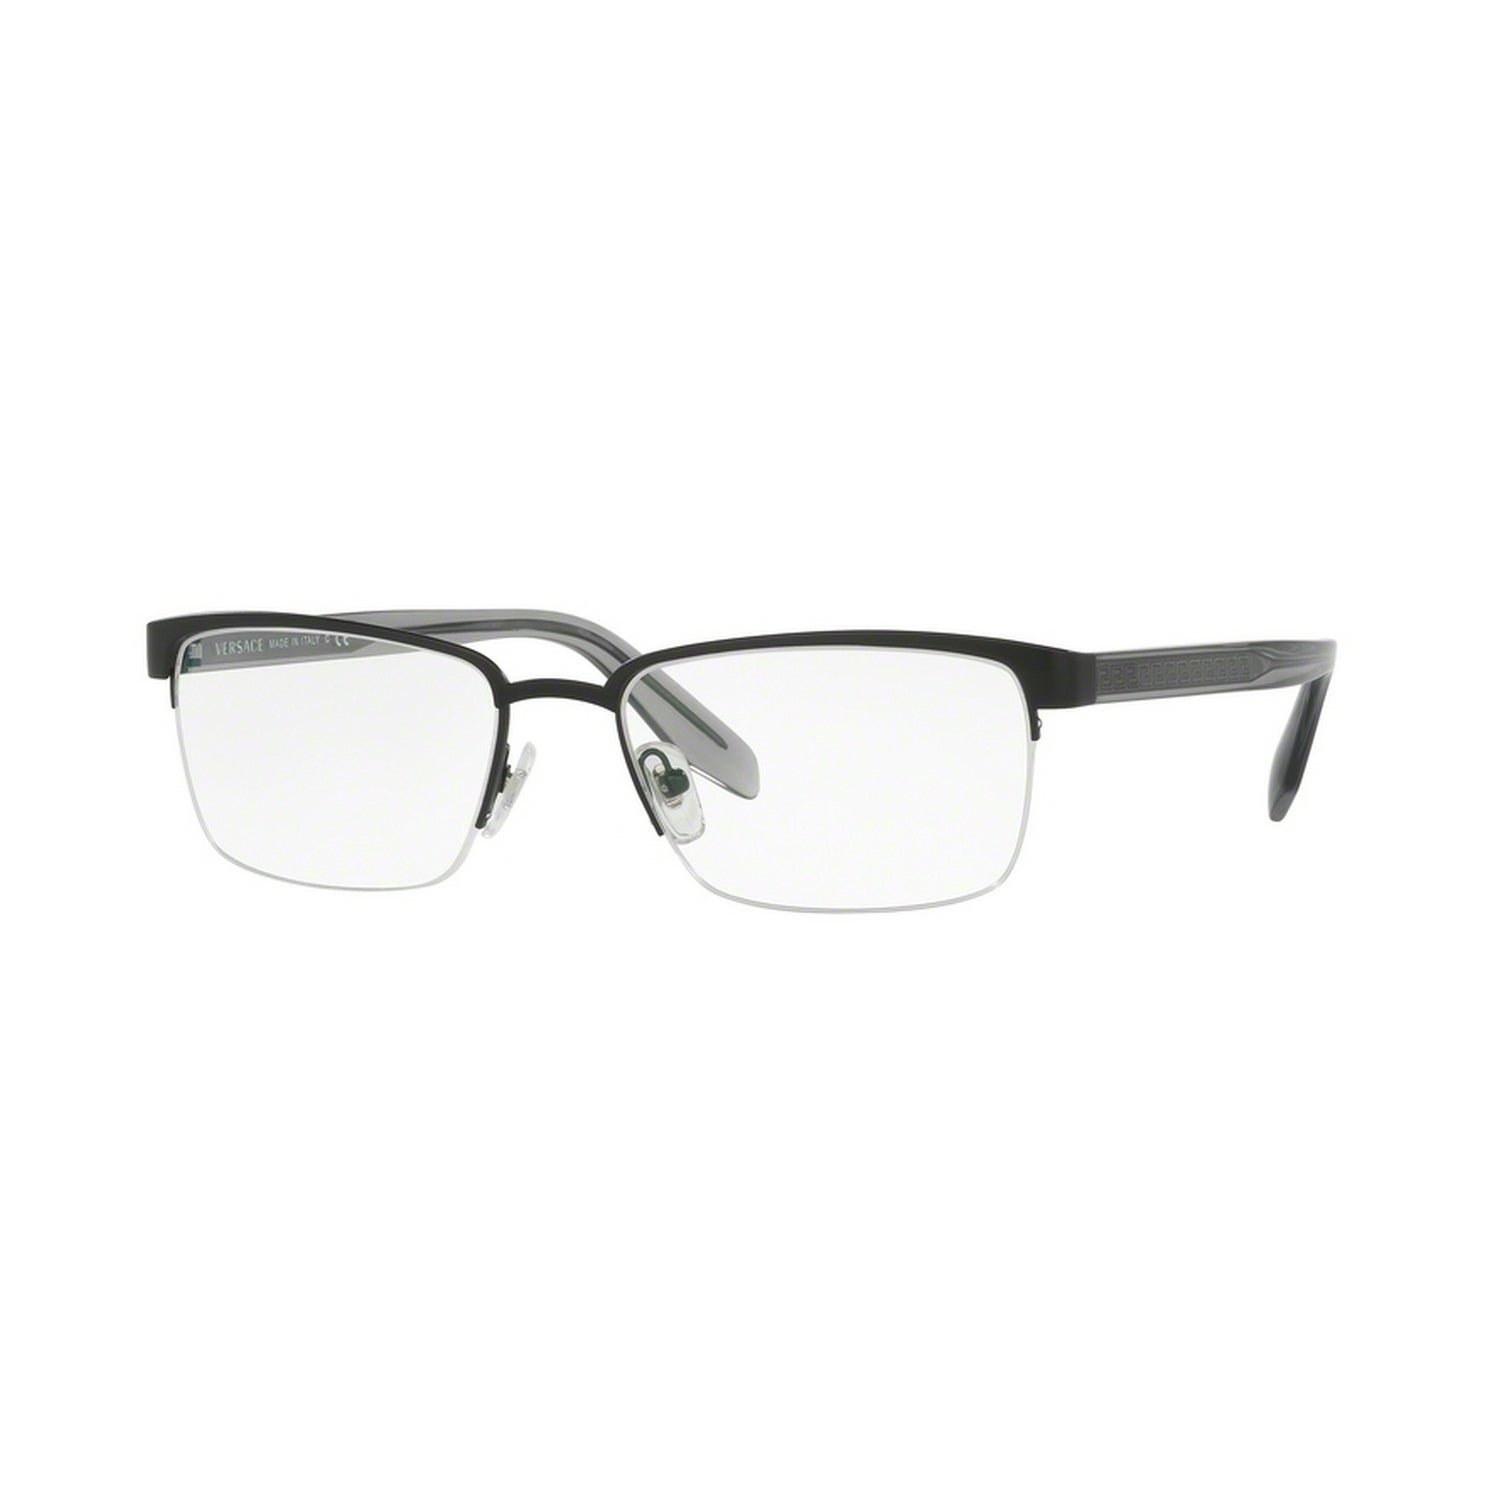 afc42315005e2 Shop Versace Men s VE1241 1261 54 Rectangle Metal Plastic Black Clear  Eyeglasses - Free Shipping Today - Overstock - 14779978